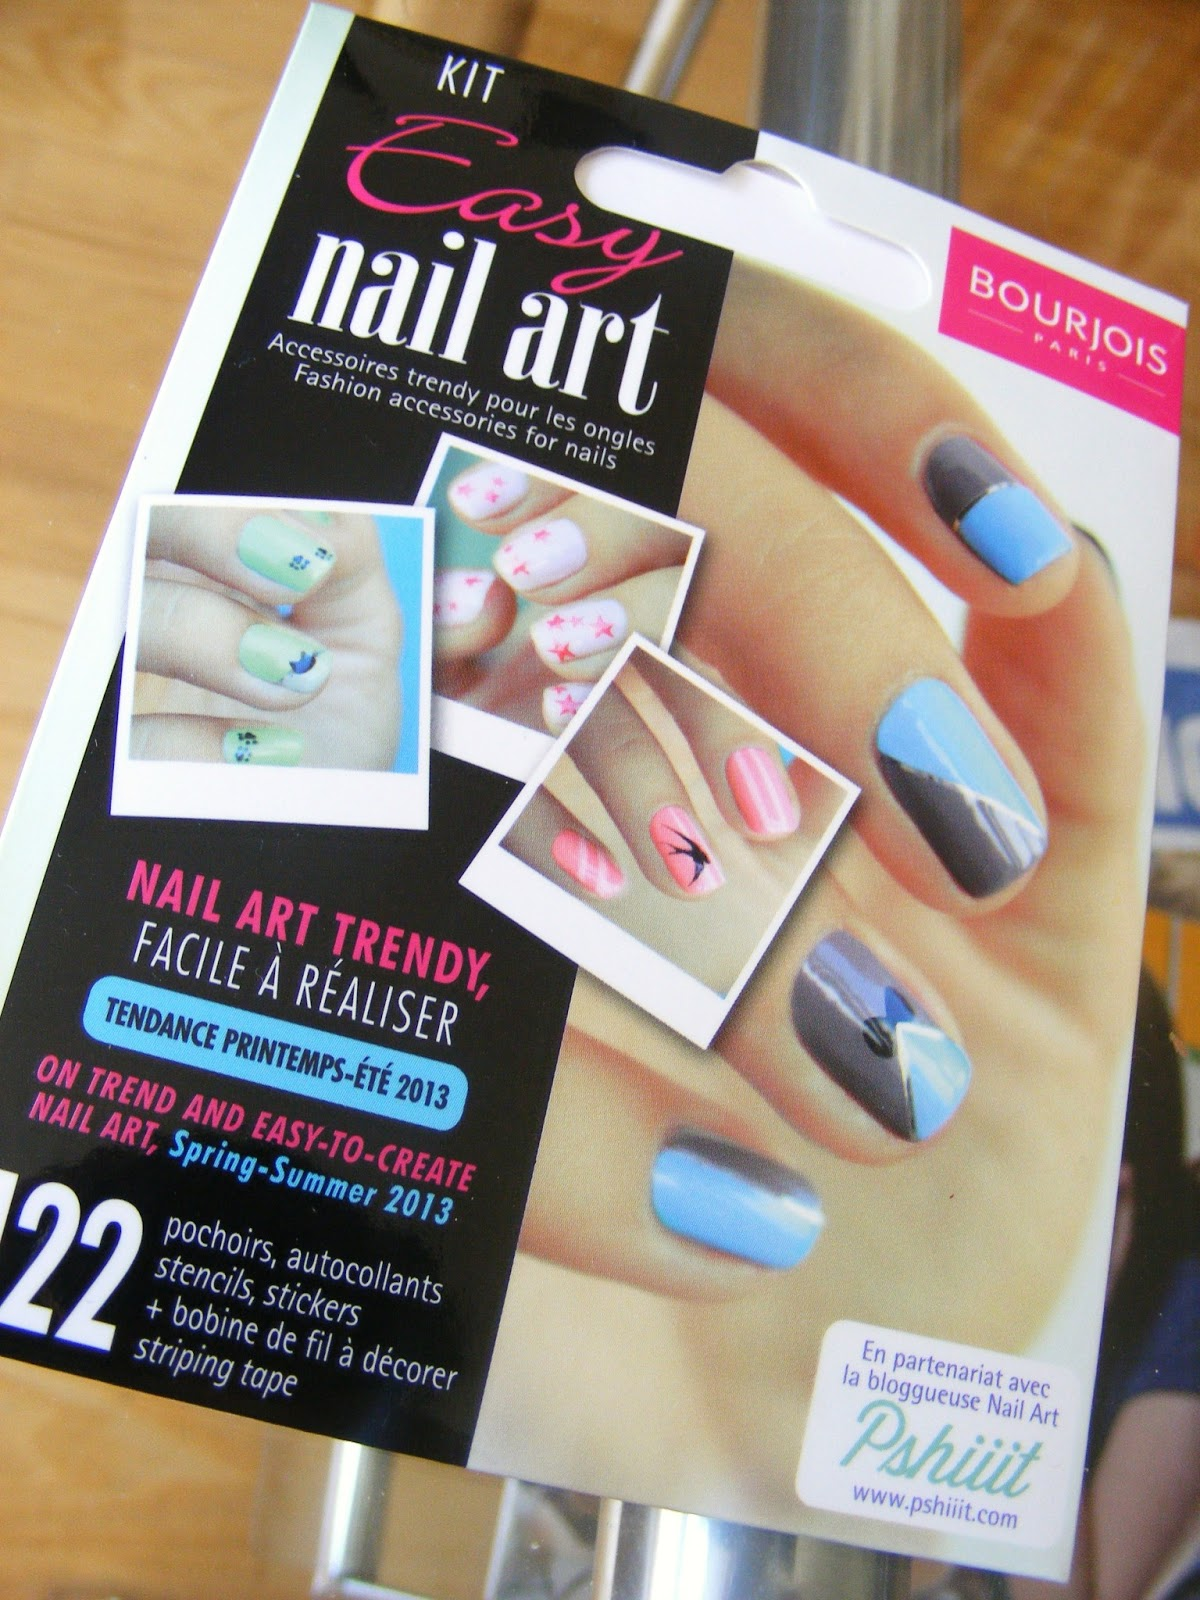 Nails- Bourjois Nail Art Kit || Review || | oh hey there rachel